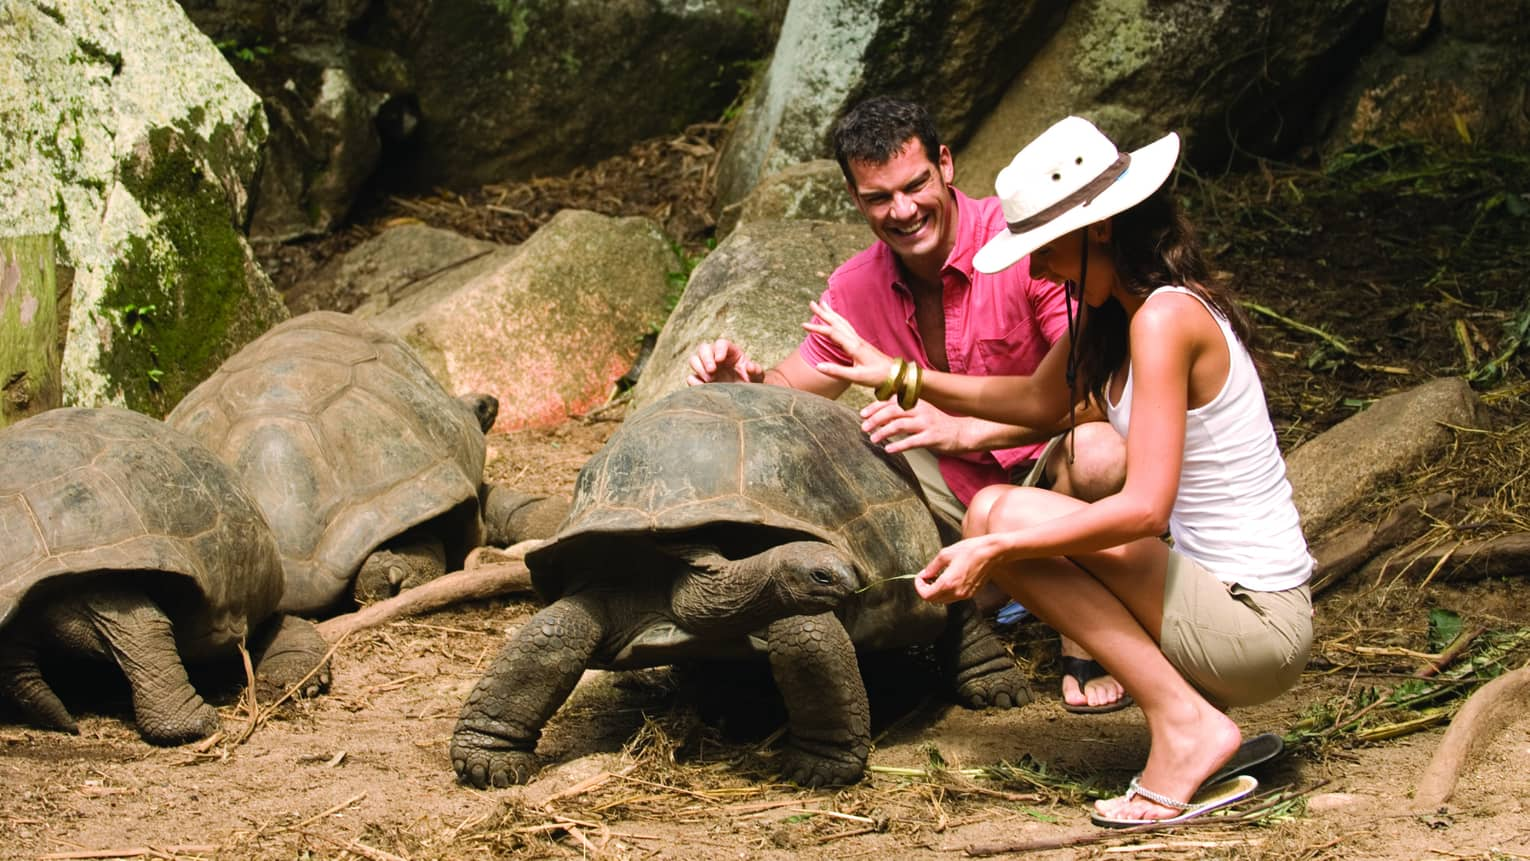 Man in pink button-up shirt and woman in white sunhat laugh, kneel above two Aldabra giant tortoises